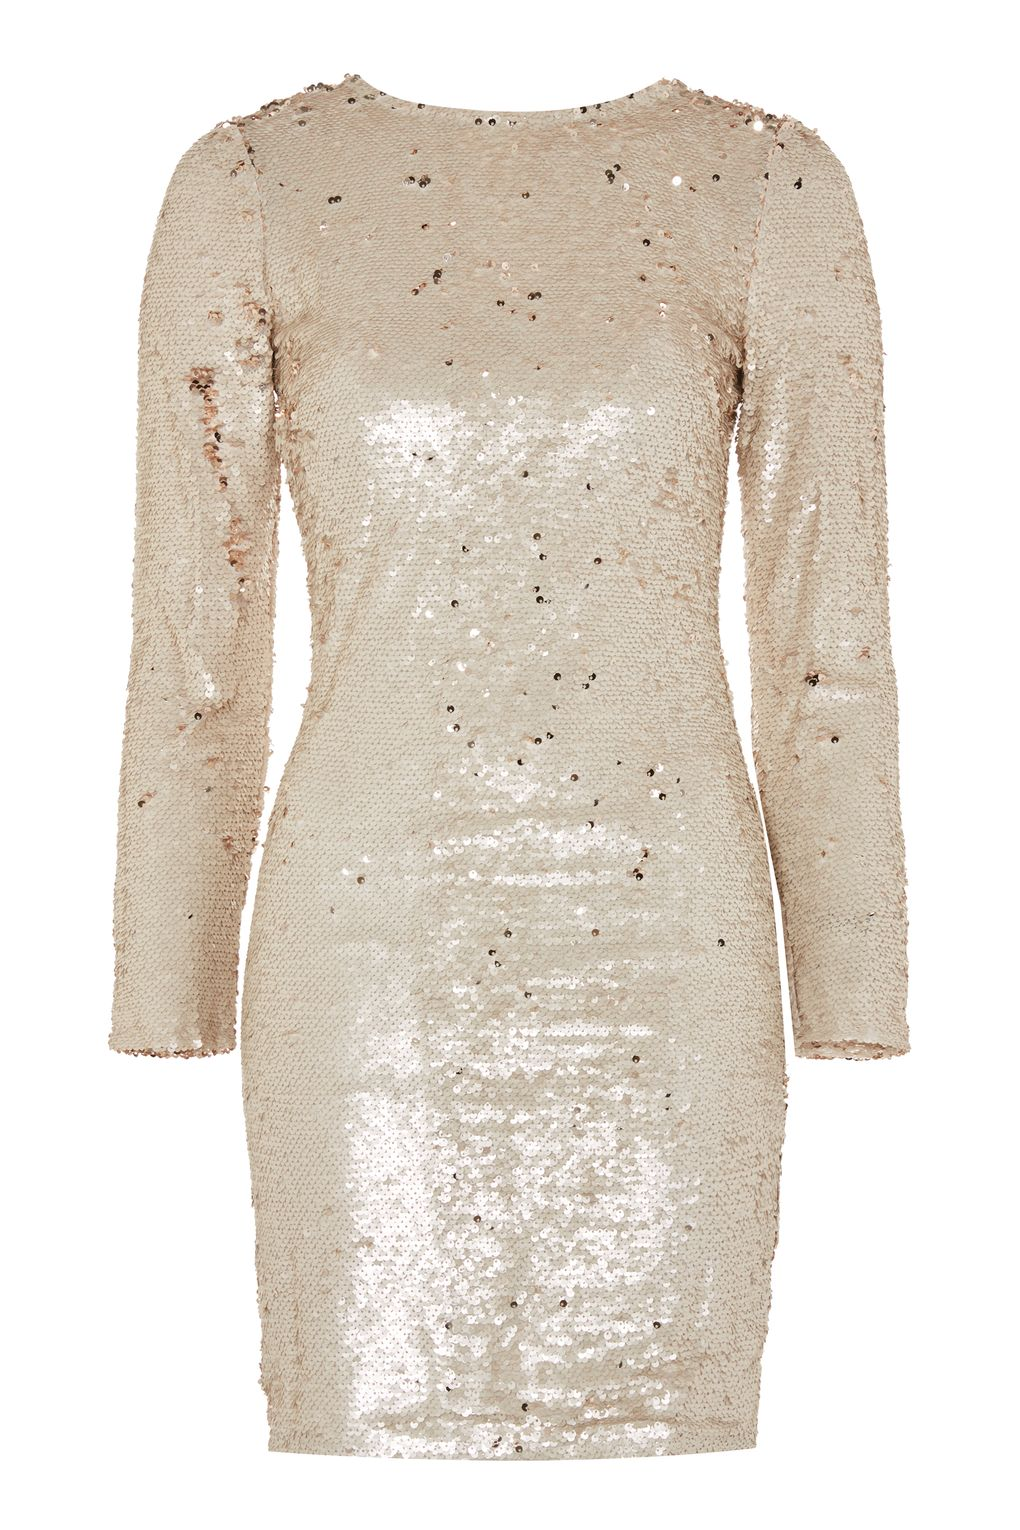 Club L Rose Gold Sequin Mini Bodycon Dress, £50, Topshop